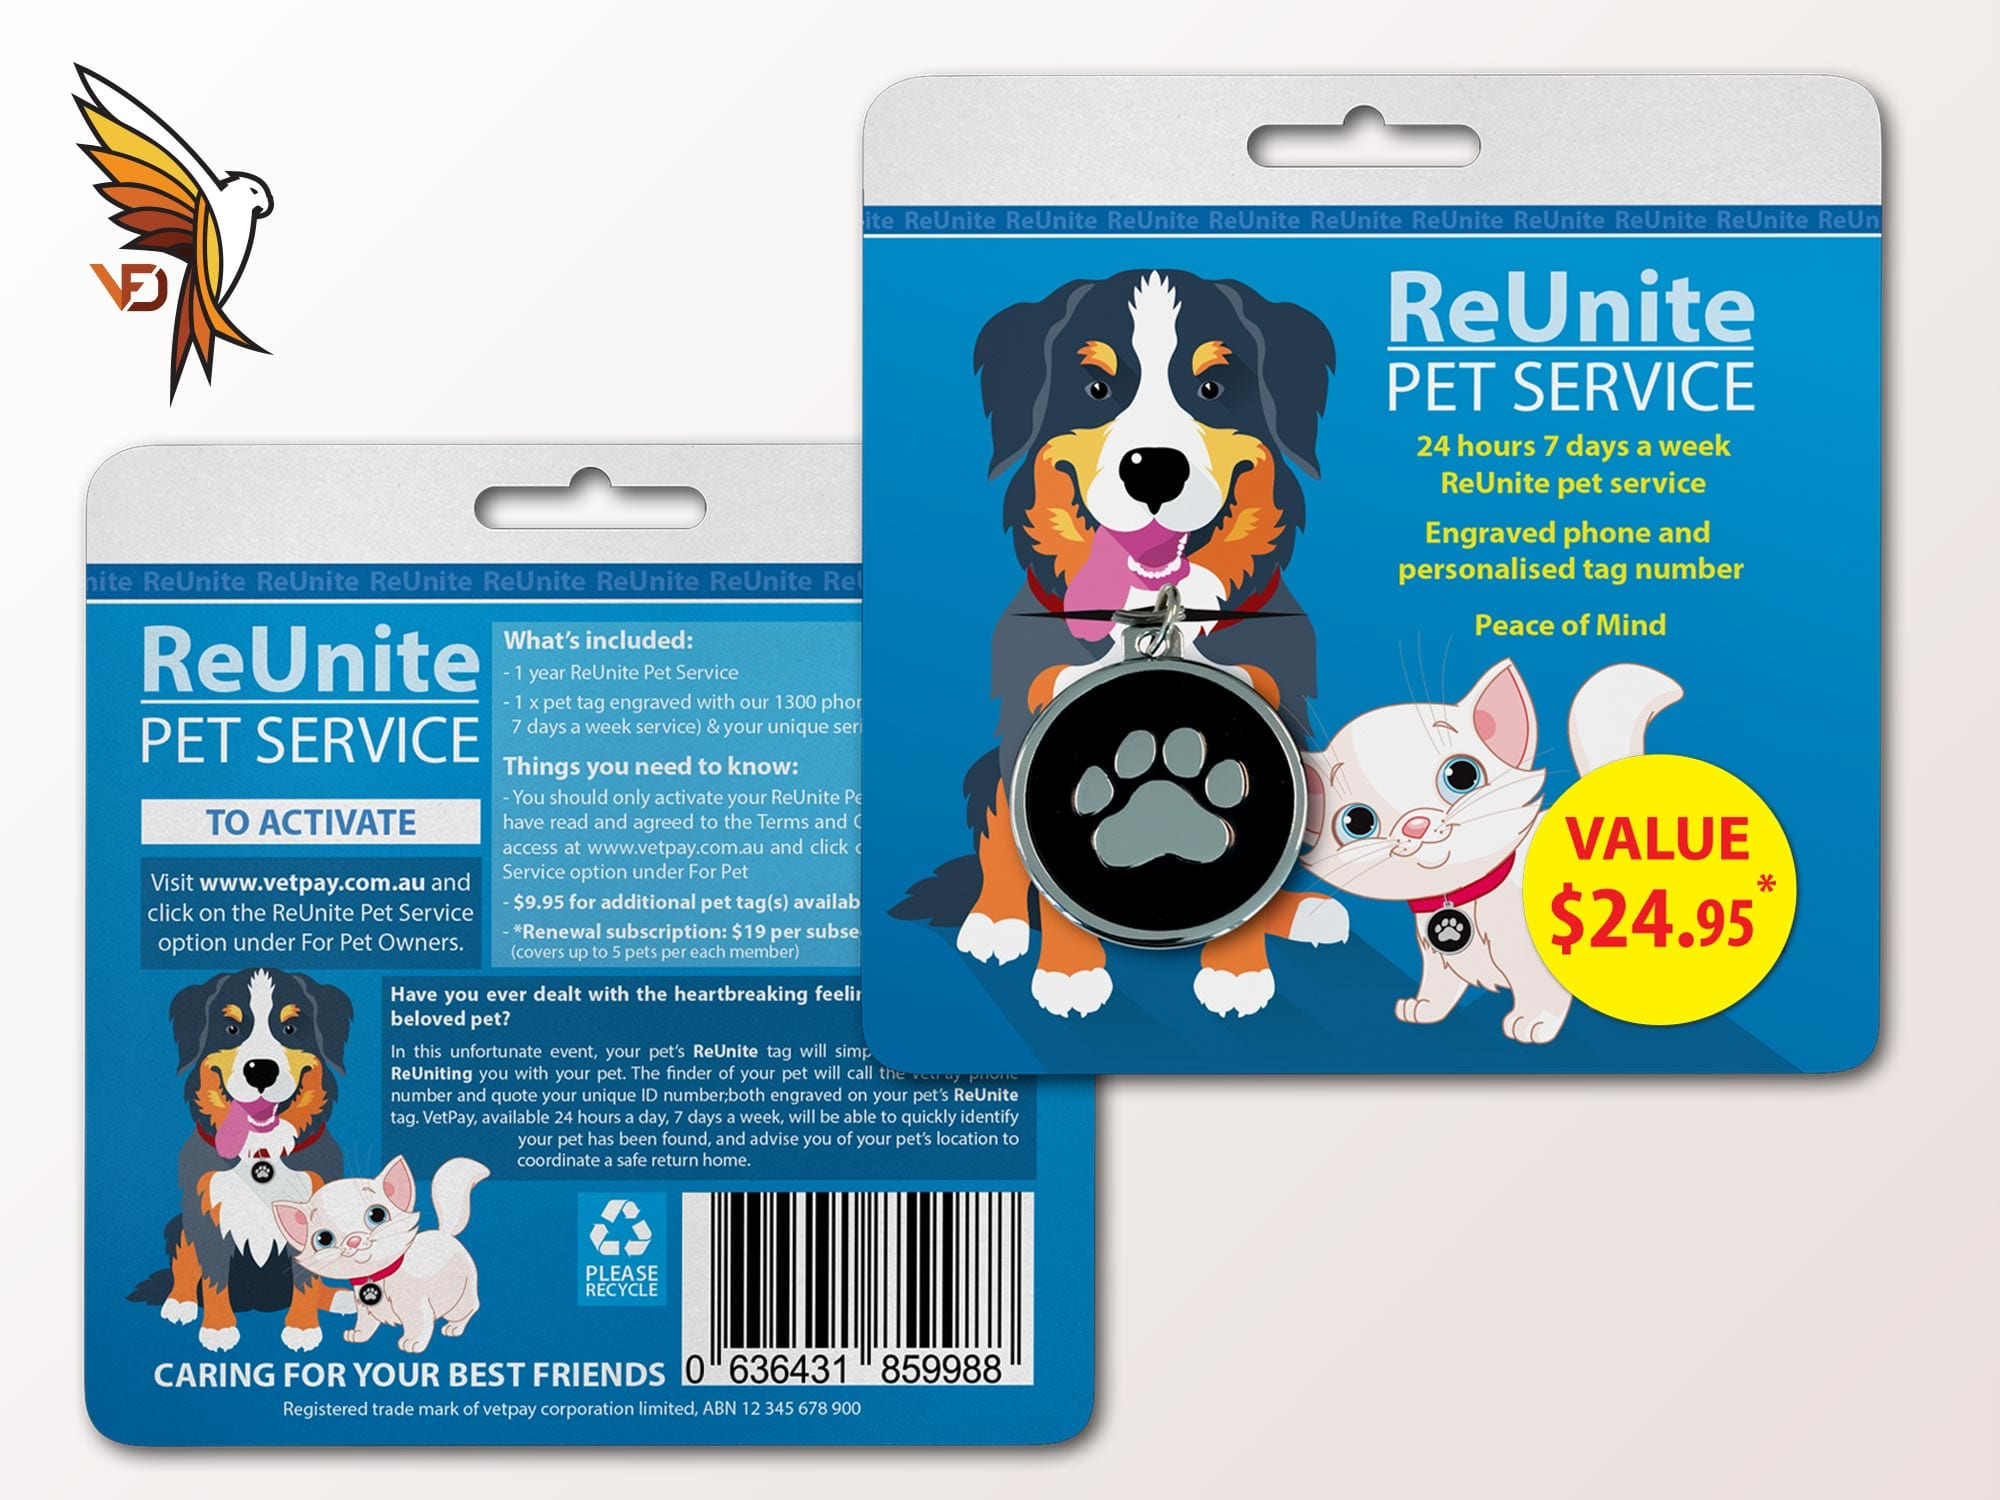 Reunite Packaging